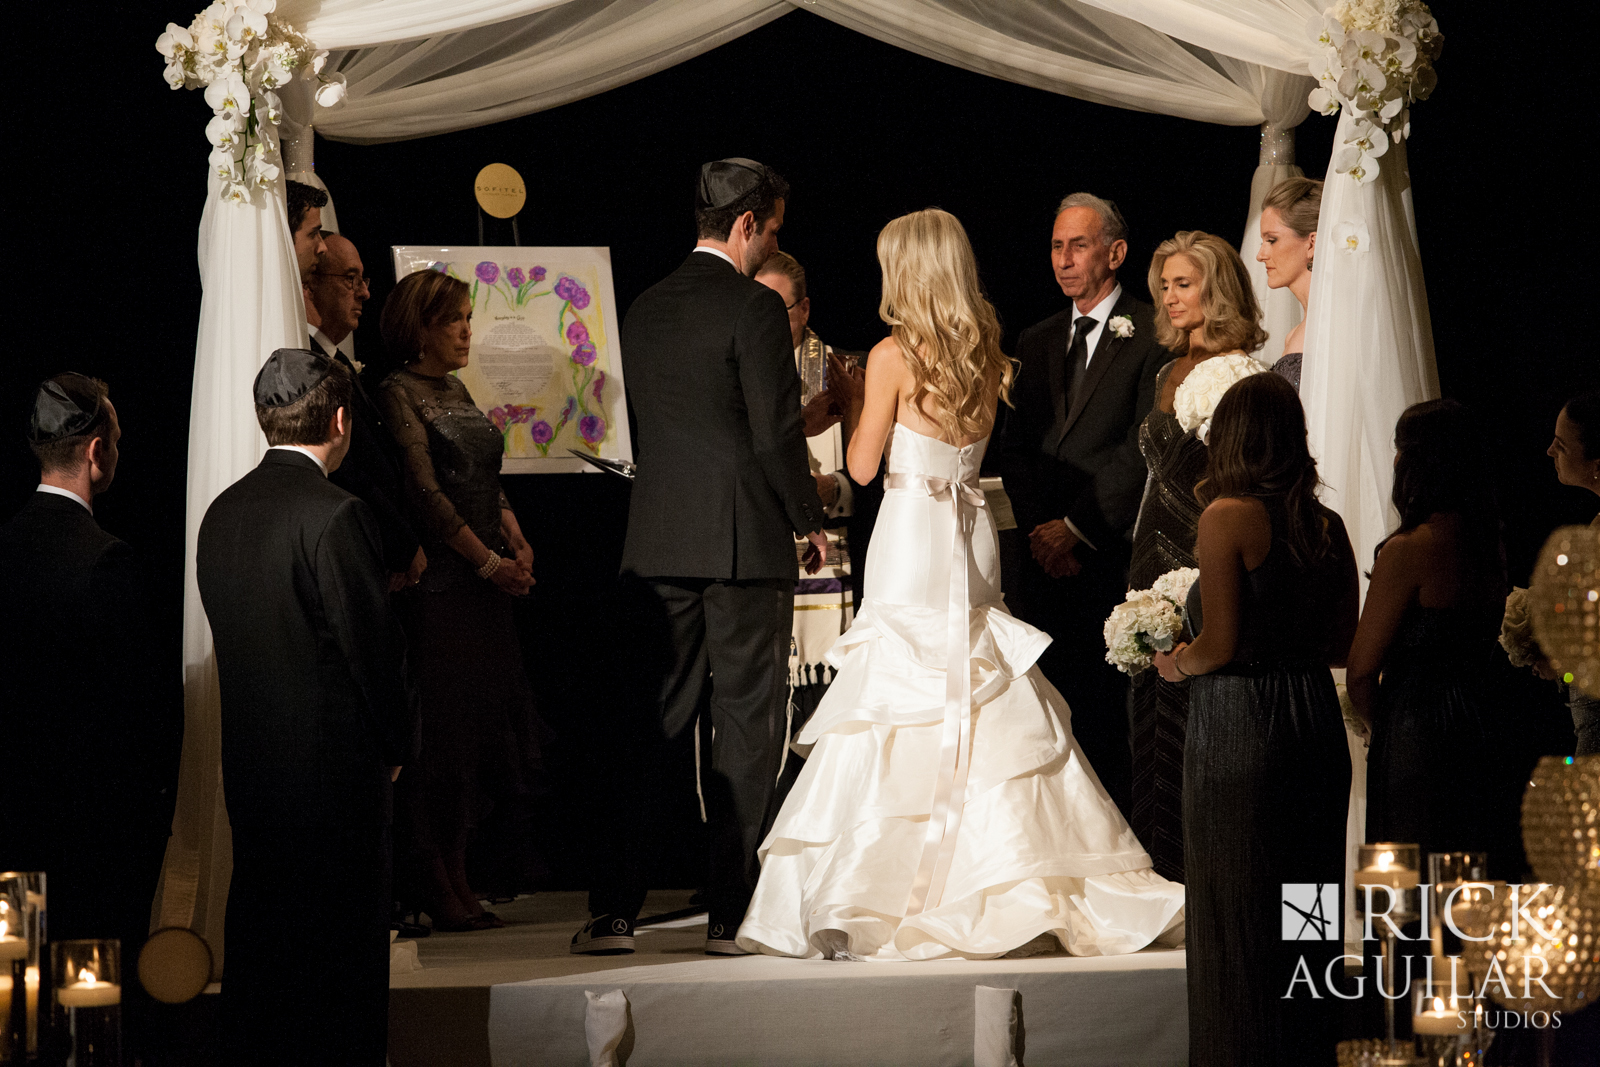 wed-on-canvas-chuppah-chicago-sofitel-hotel-wedding-artist-ben-keys-of-wed-on-canvas-wedding-artist